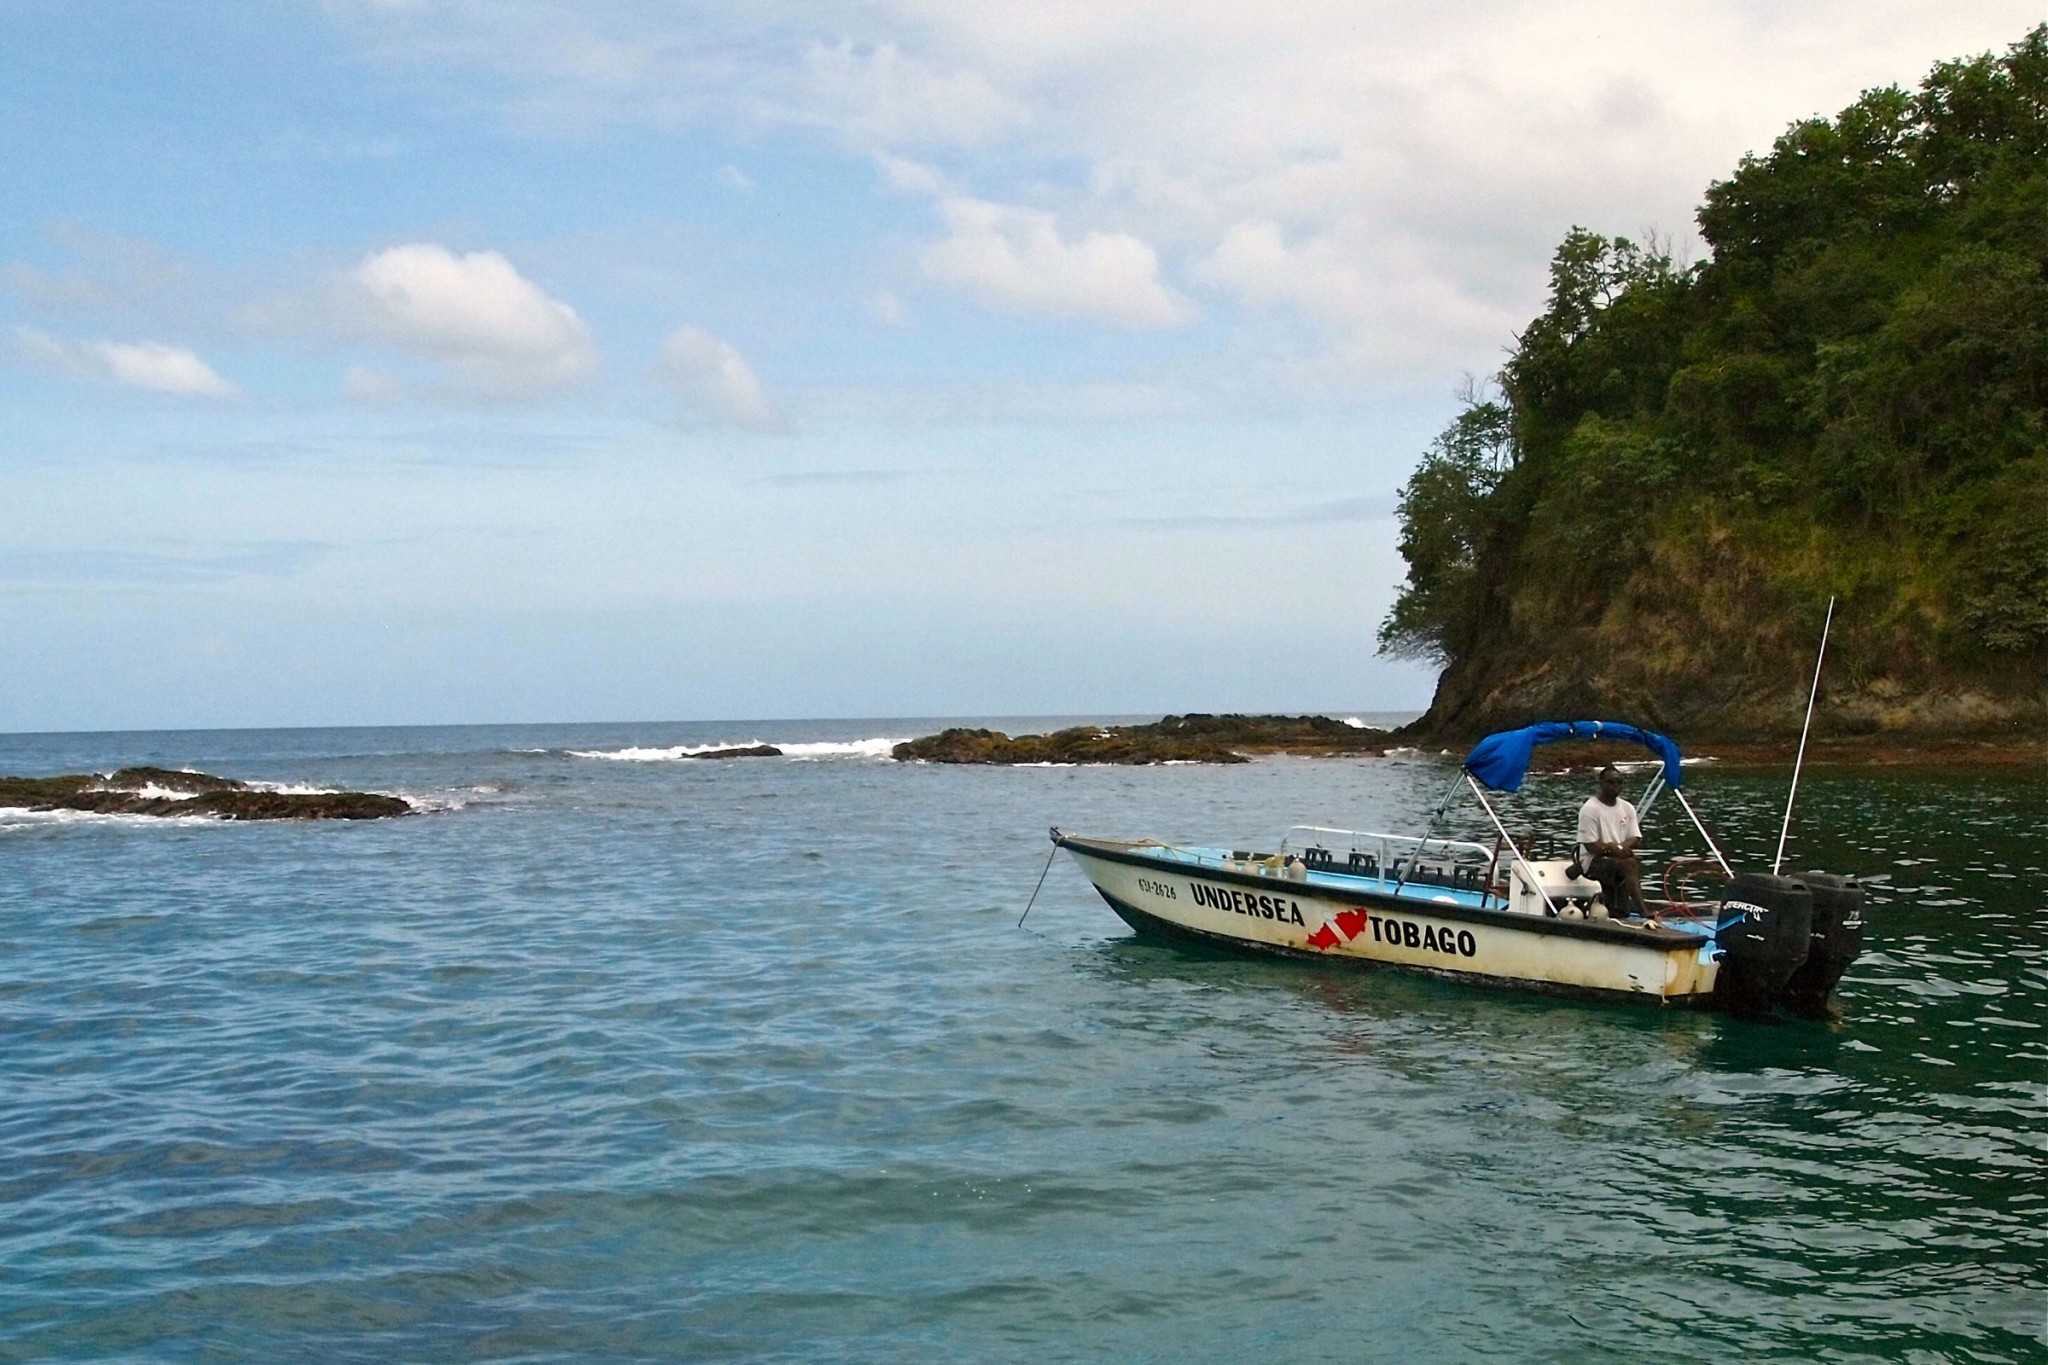 At Anchor With Undersea Tobago: Wish You Were Here